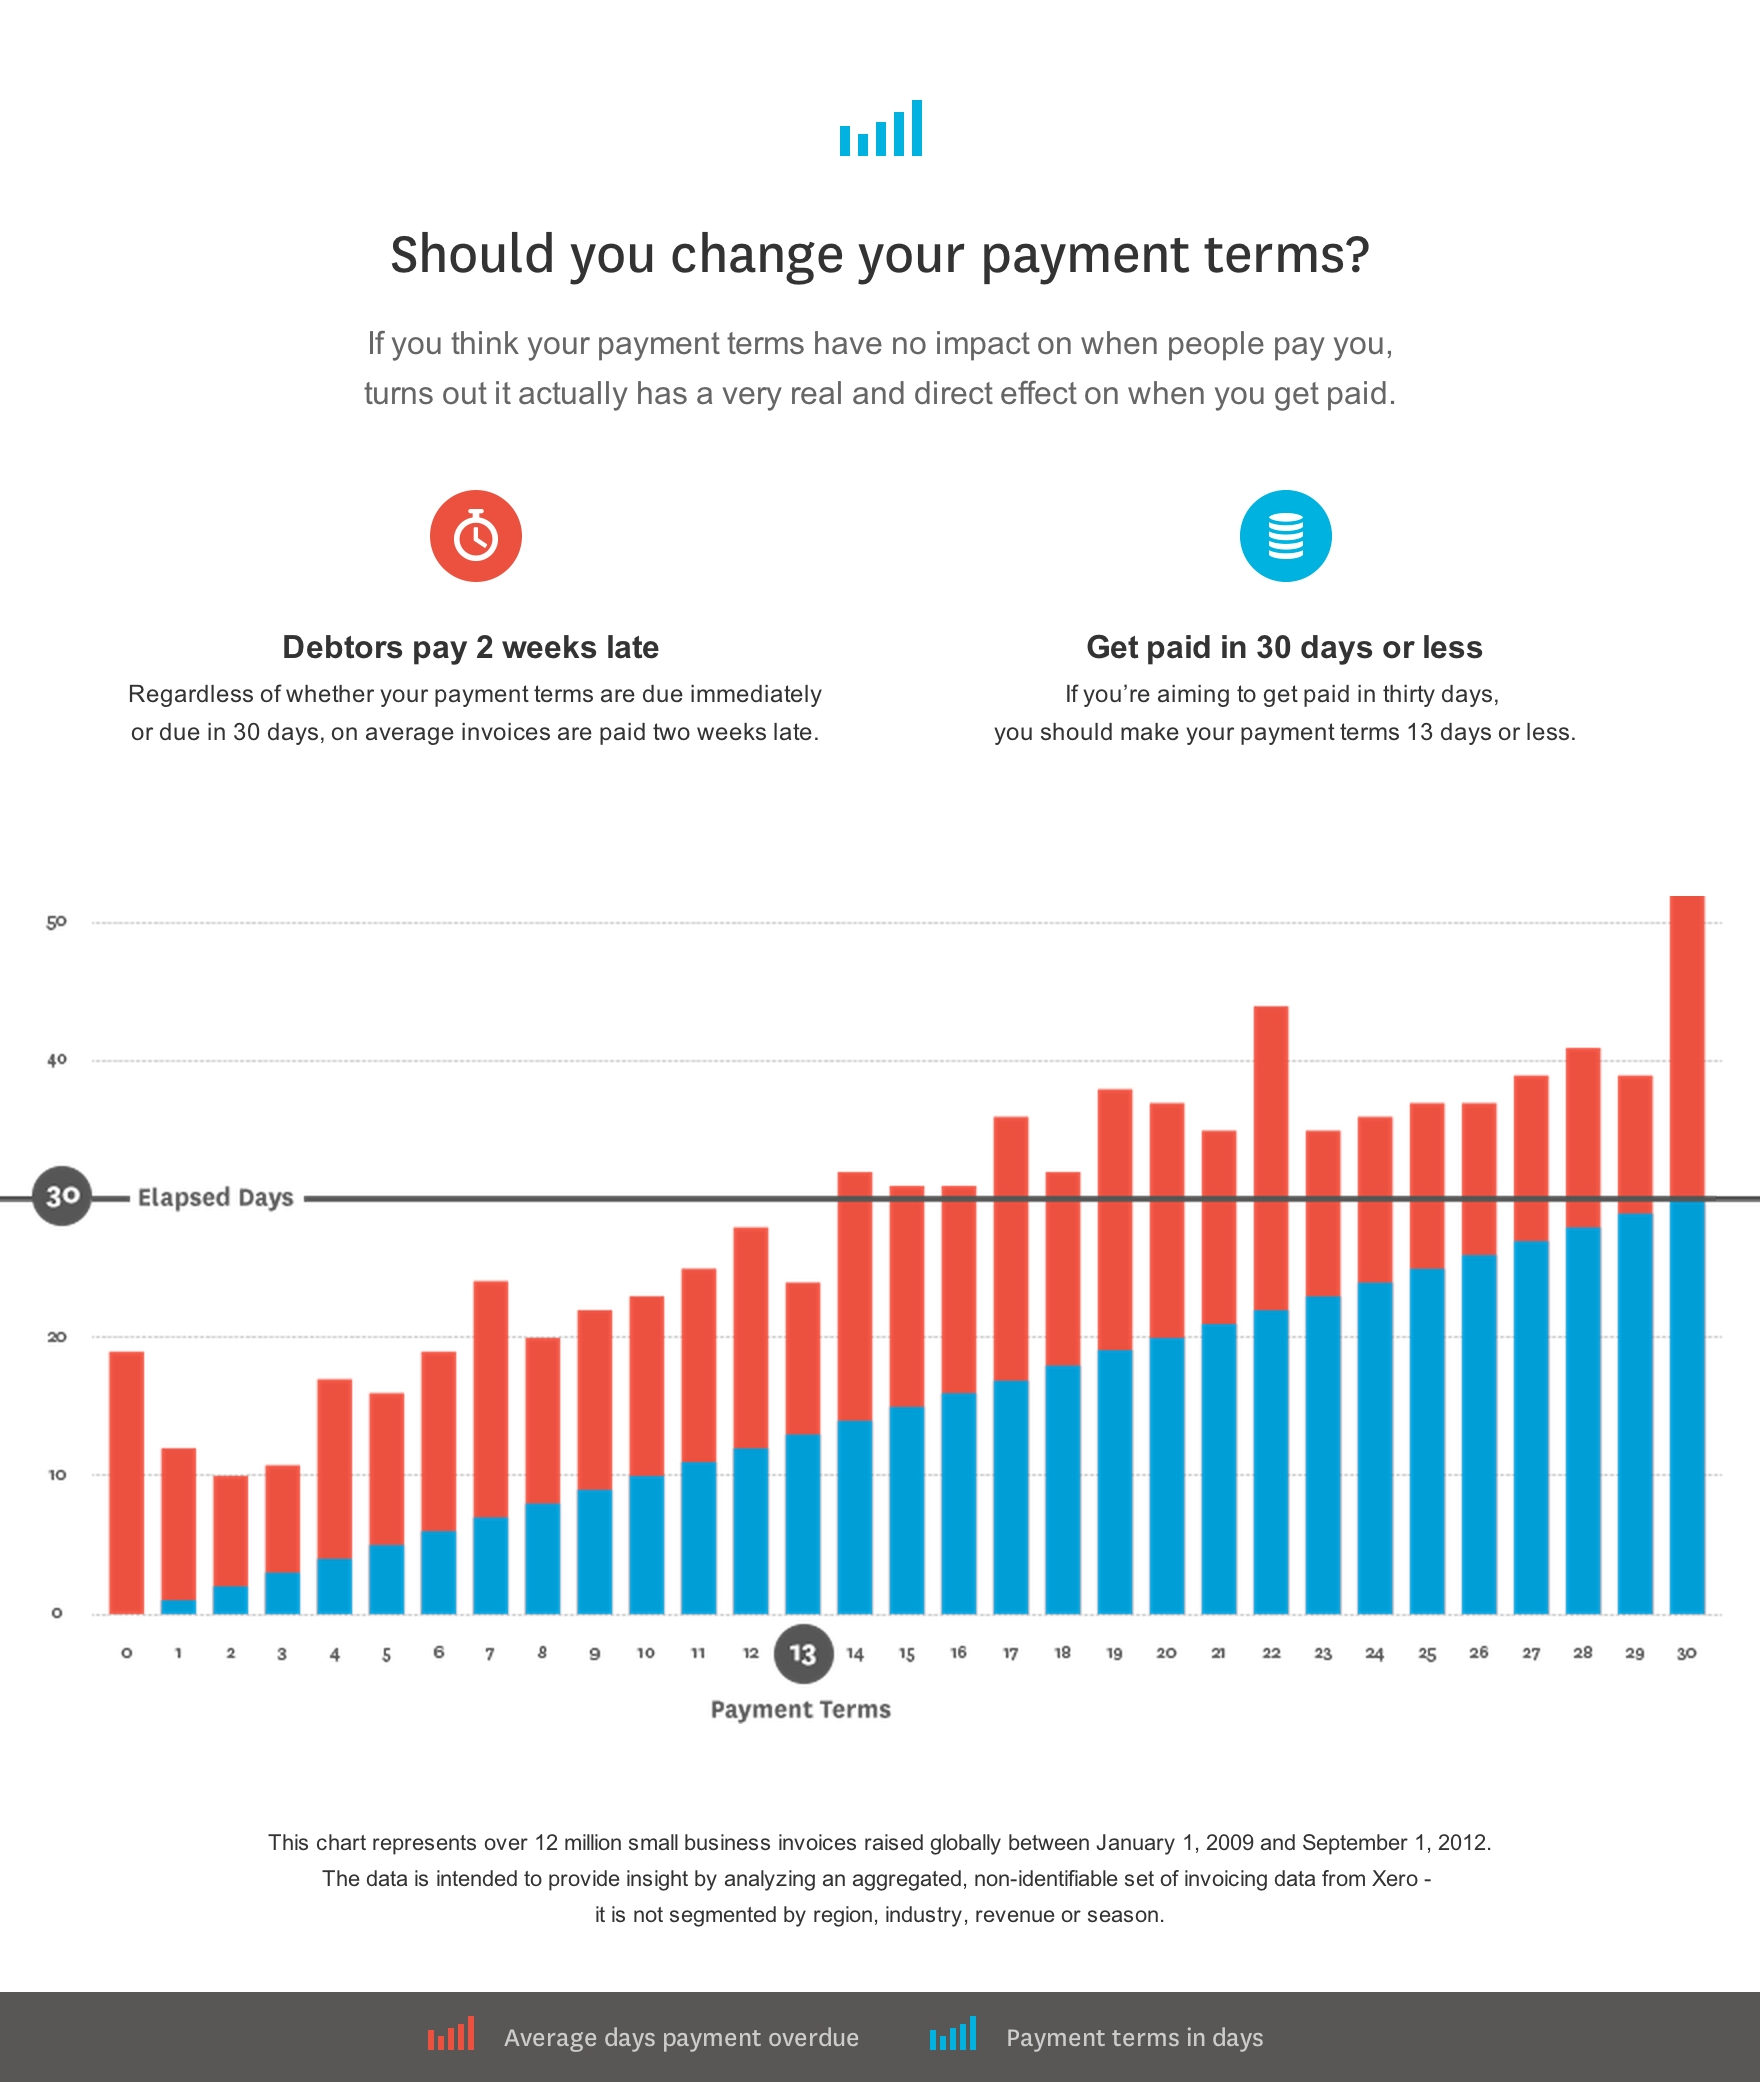 invoice payment terms top 7 tips small business guide xero payment of invoices within 30 days